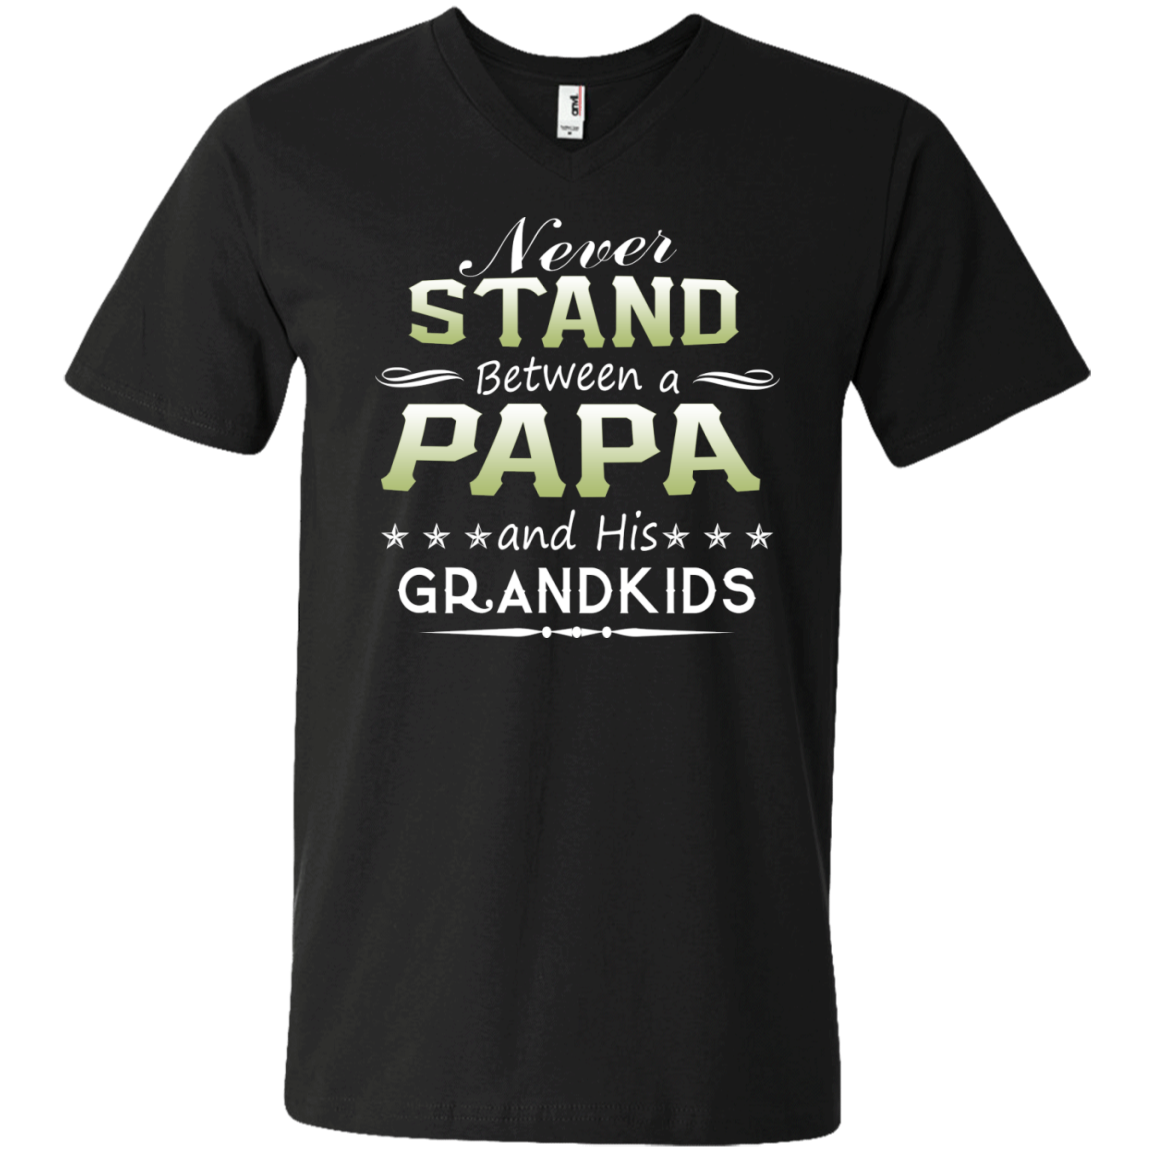 Never Stand Between a Papa and his Grandkids T-shirt - The Sun Cat